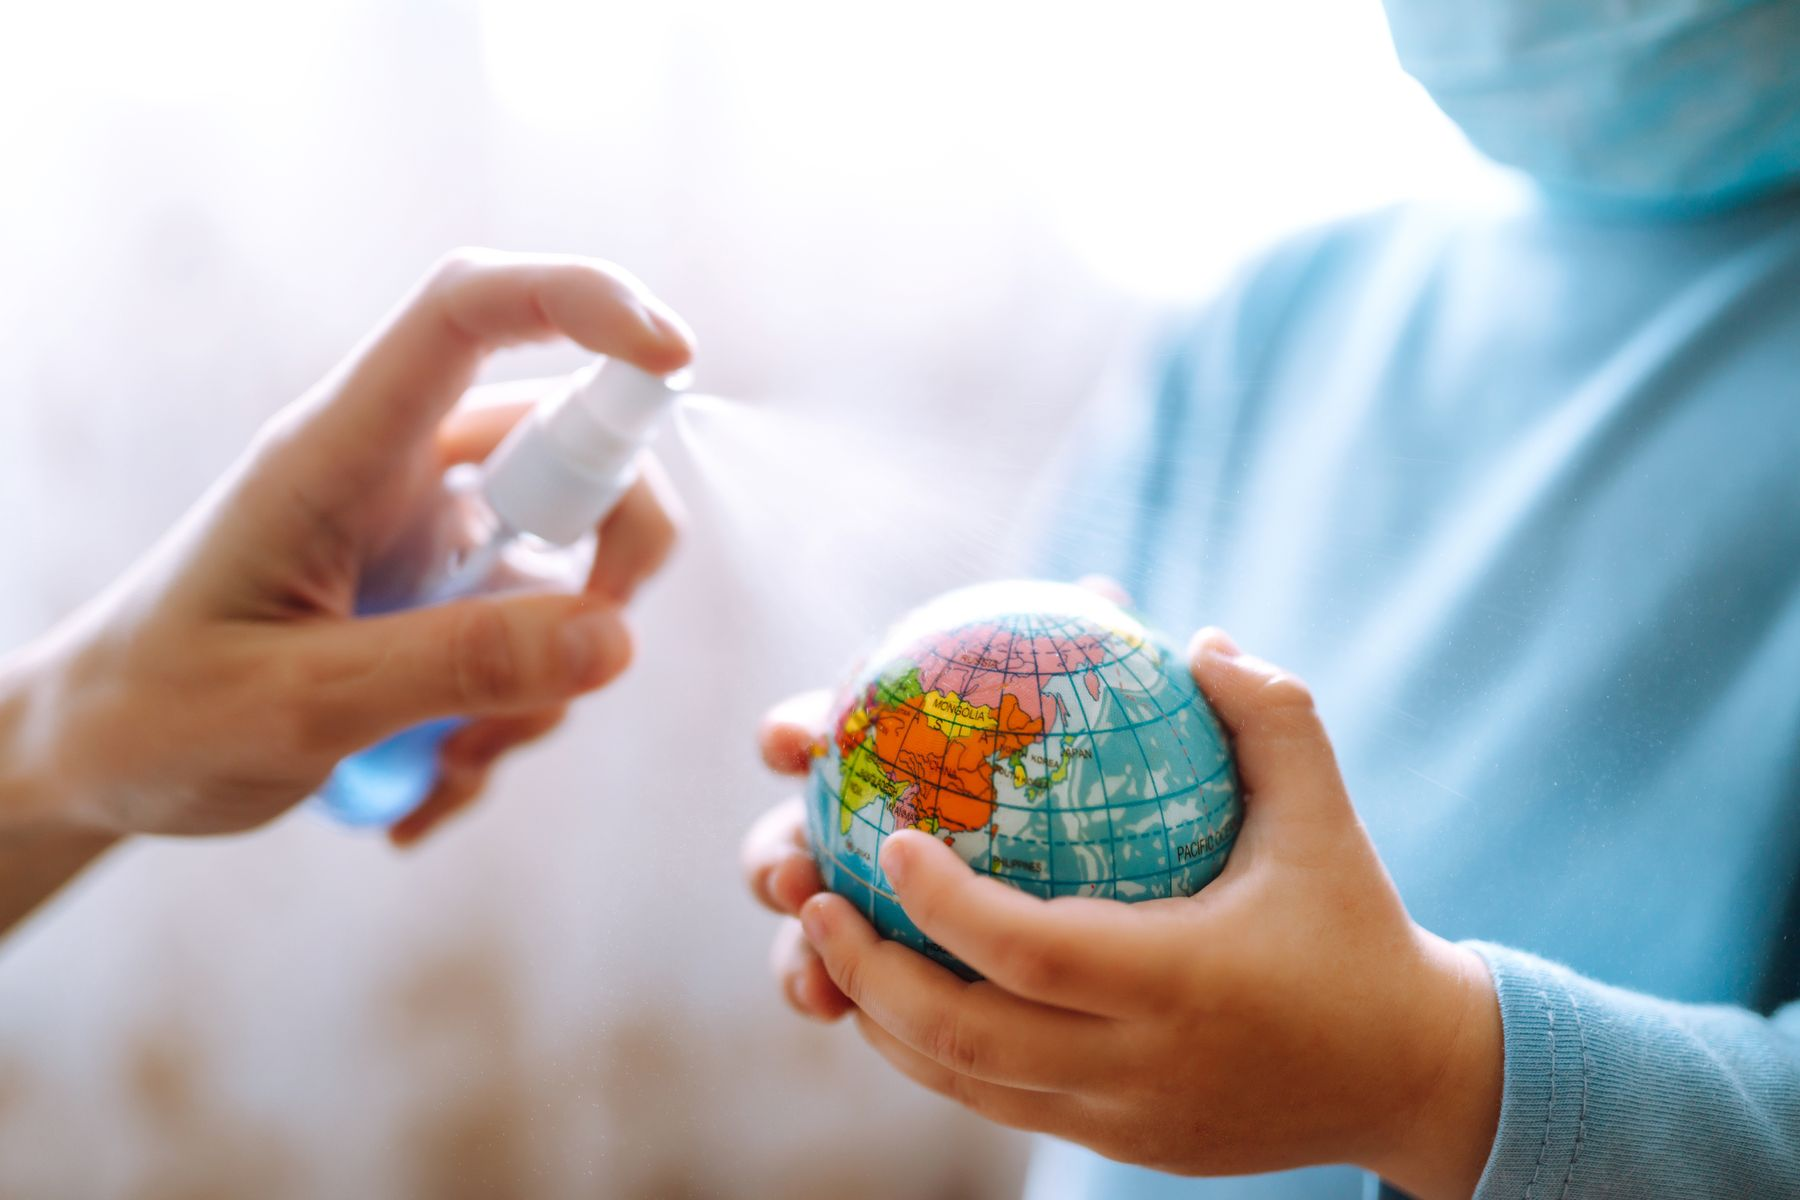 person spraying cleaning solution on a little toy globe held by a child